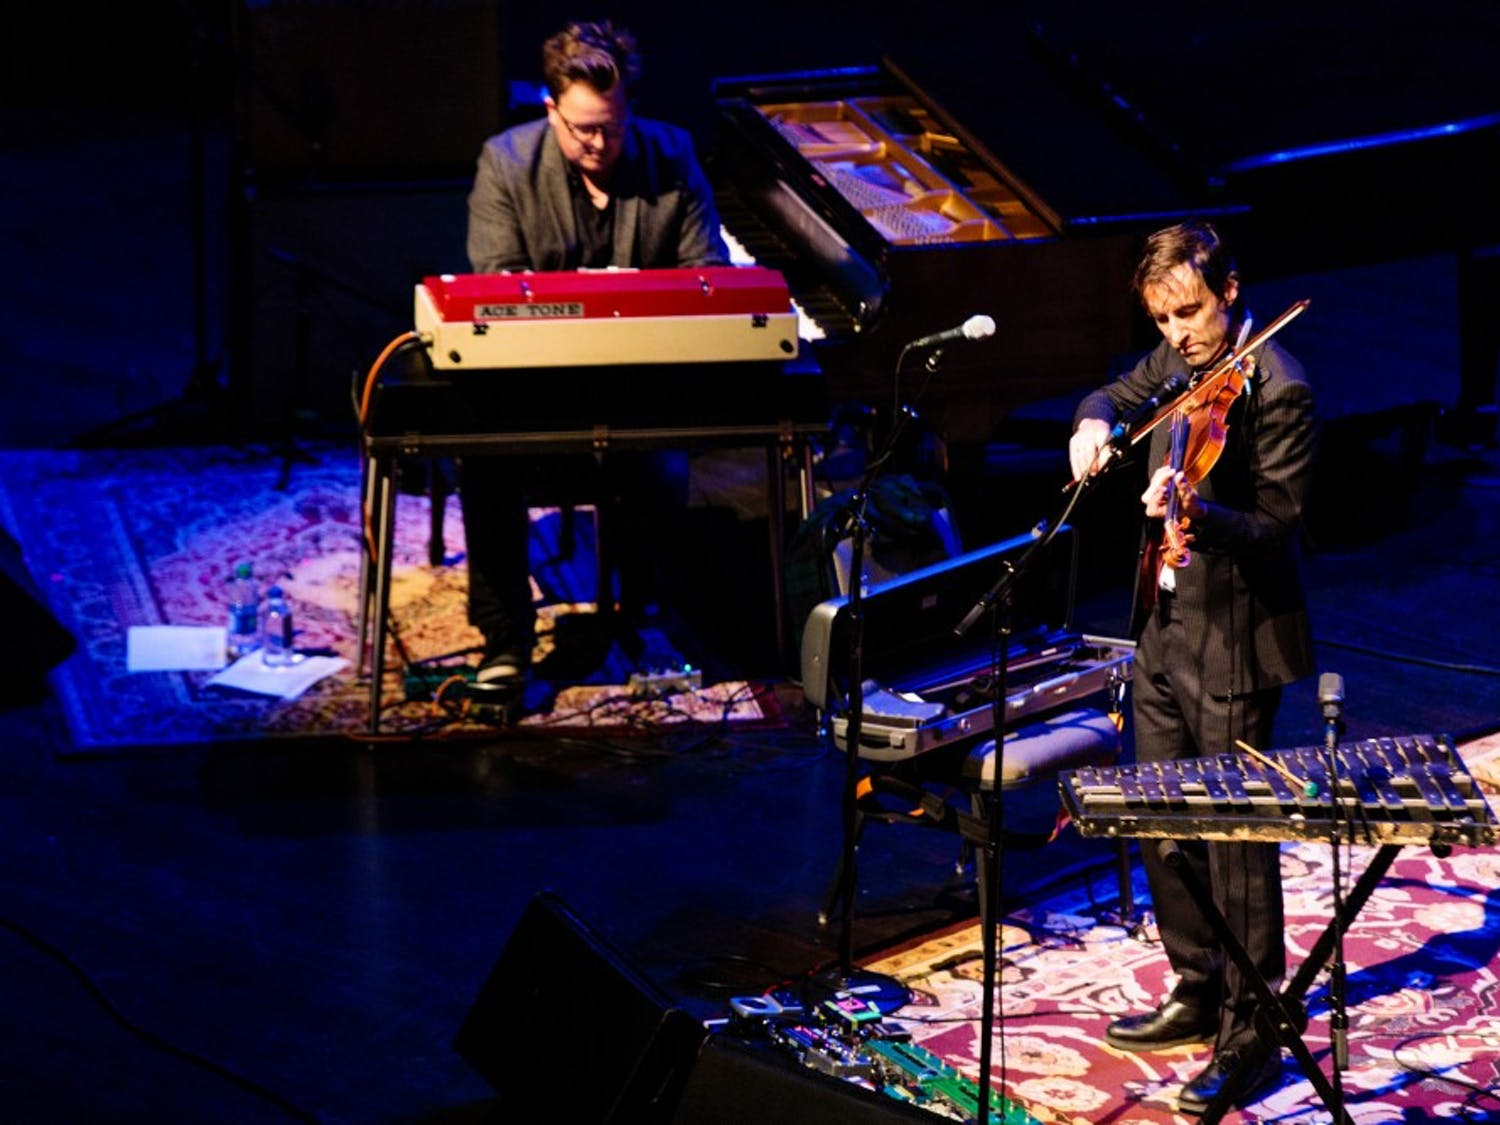 Singer and multi-instrumentalist Andrew Bird took his national tour to the CFA Saturday night. Bird demonstrated his eclectic musical ability through a survey of his discography.